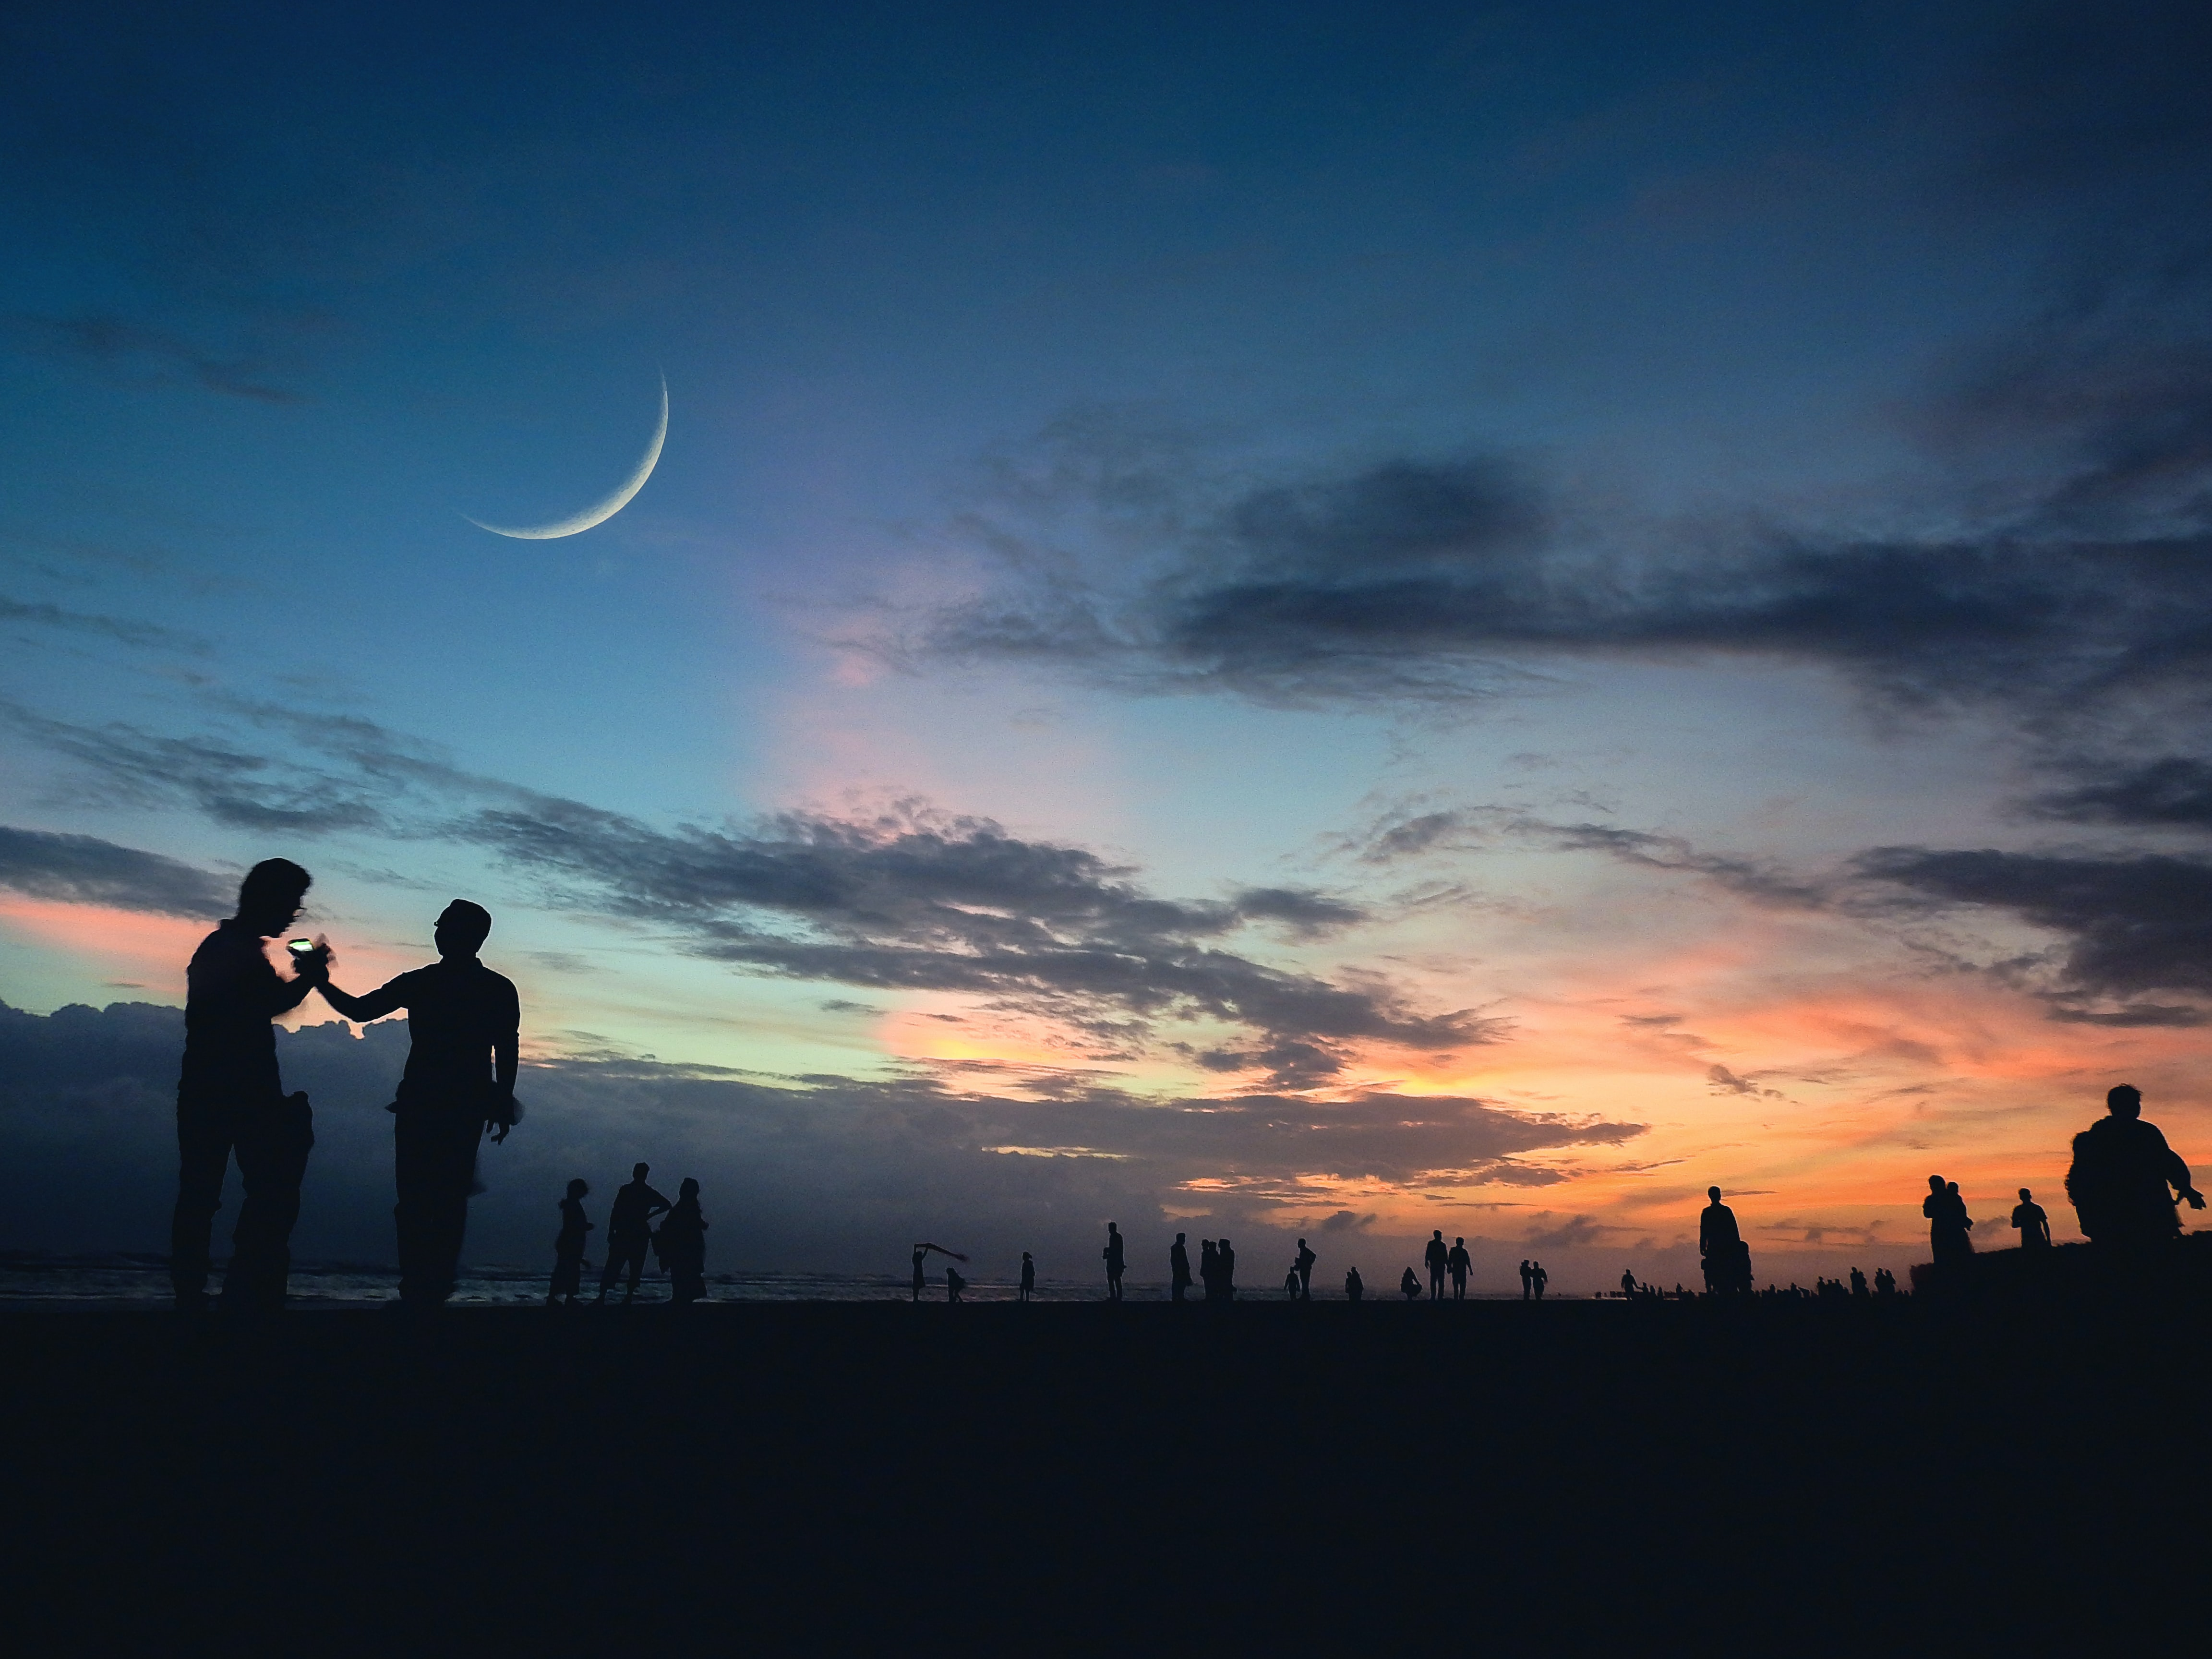 People silhouetted against a twilit sky pinned with a crescent moon at Cox's Bazar